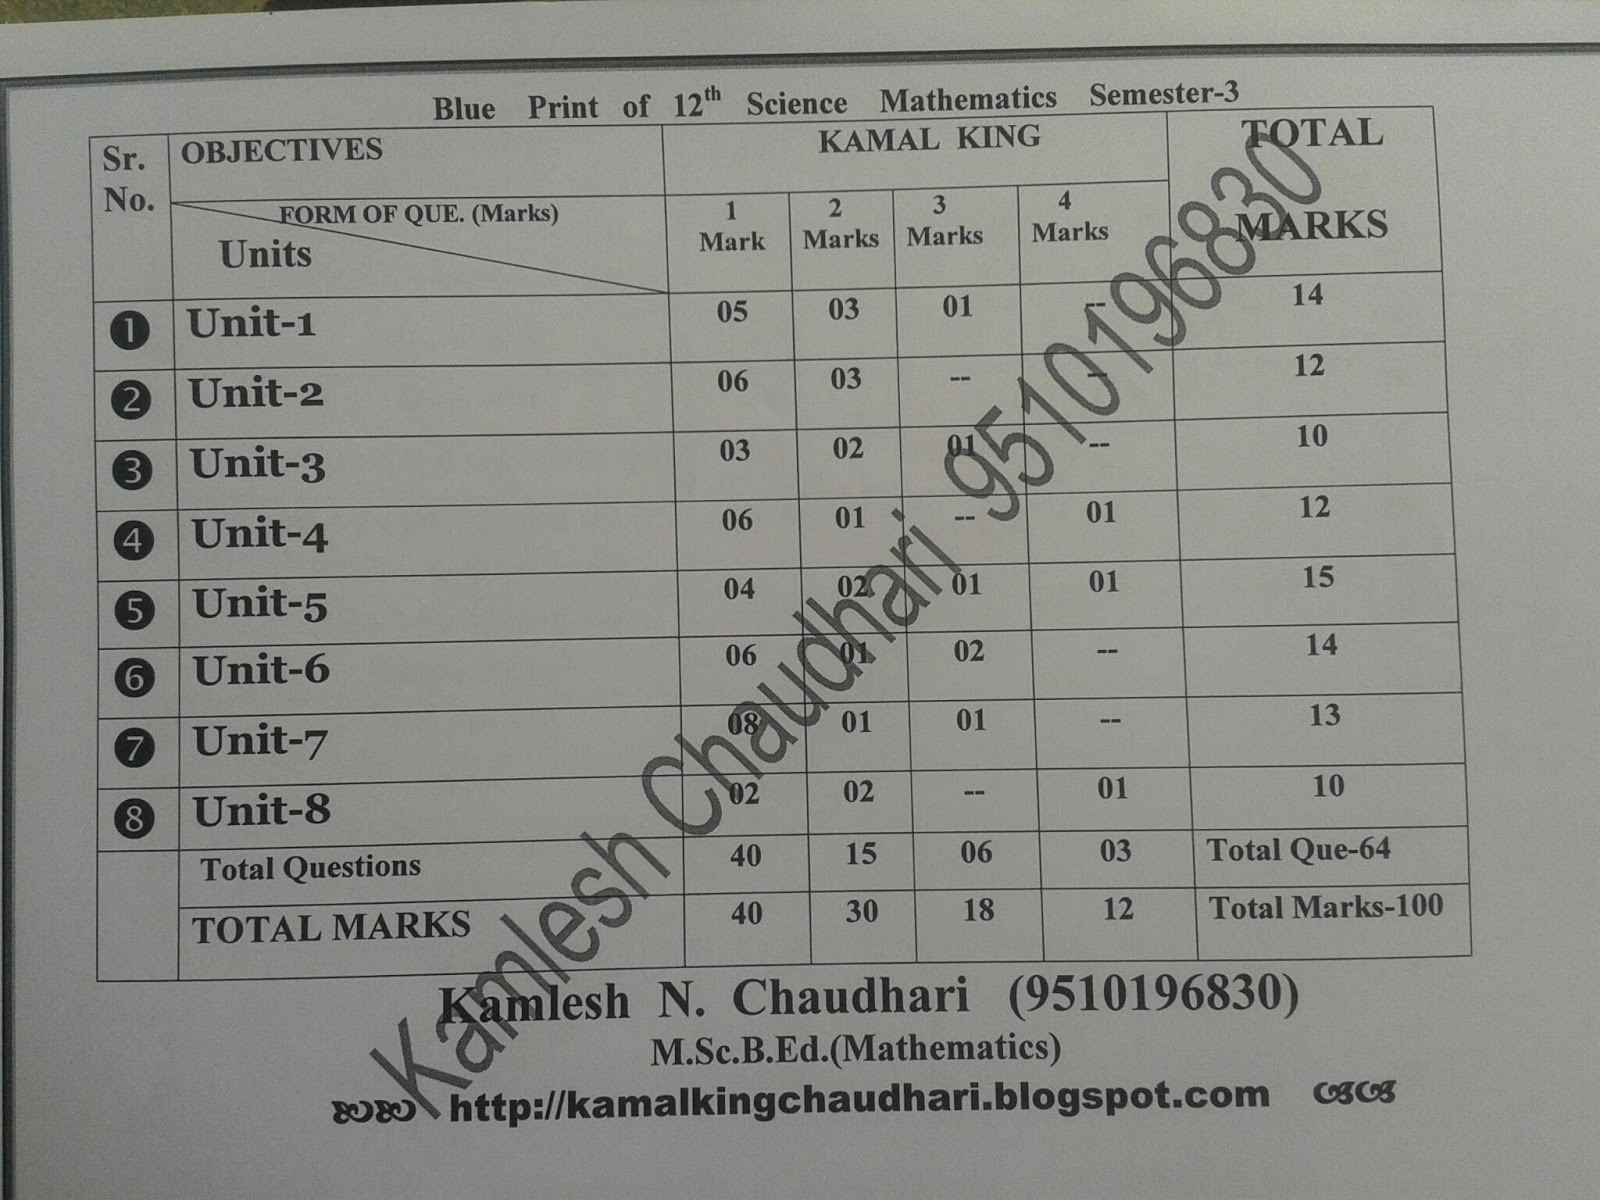 Blue Print Of Mathematics Paper For 11th 12th Science Board Exam All Semesters Kamal King